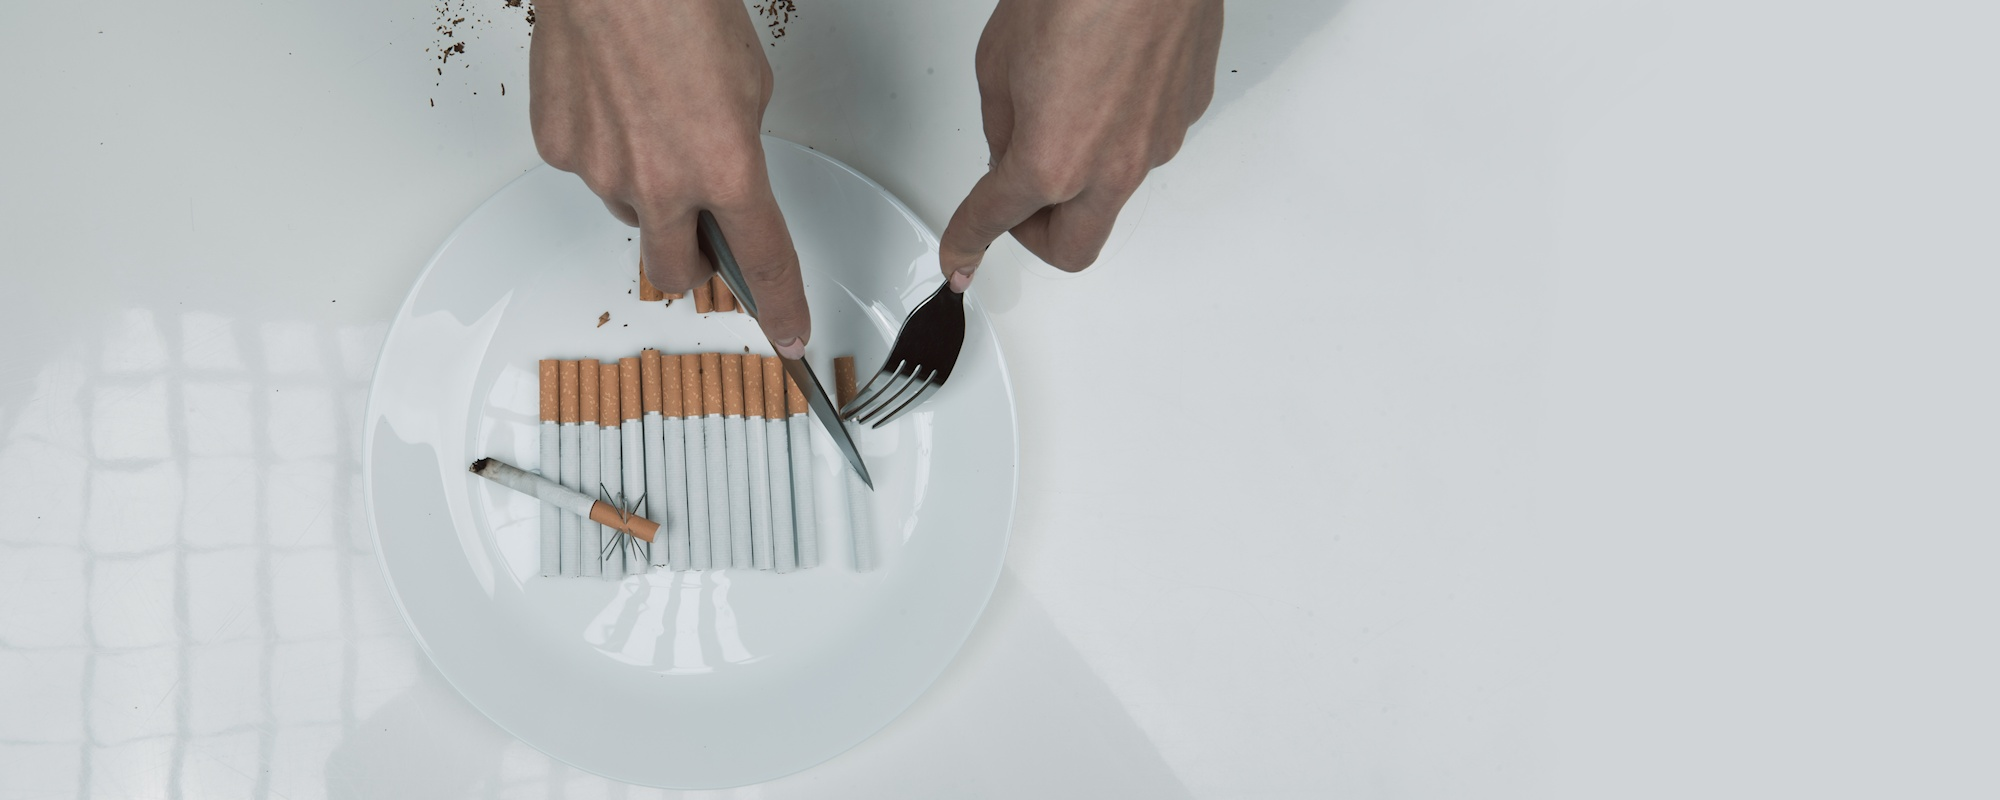 Person using cutlery on cigarettes on a plate